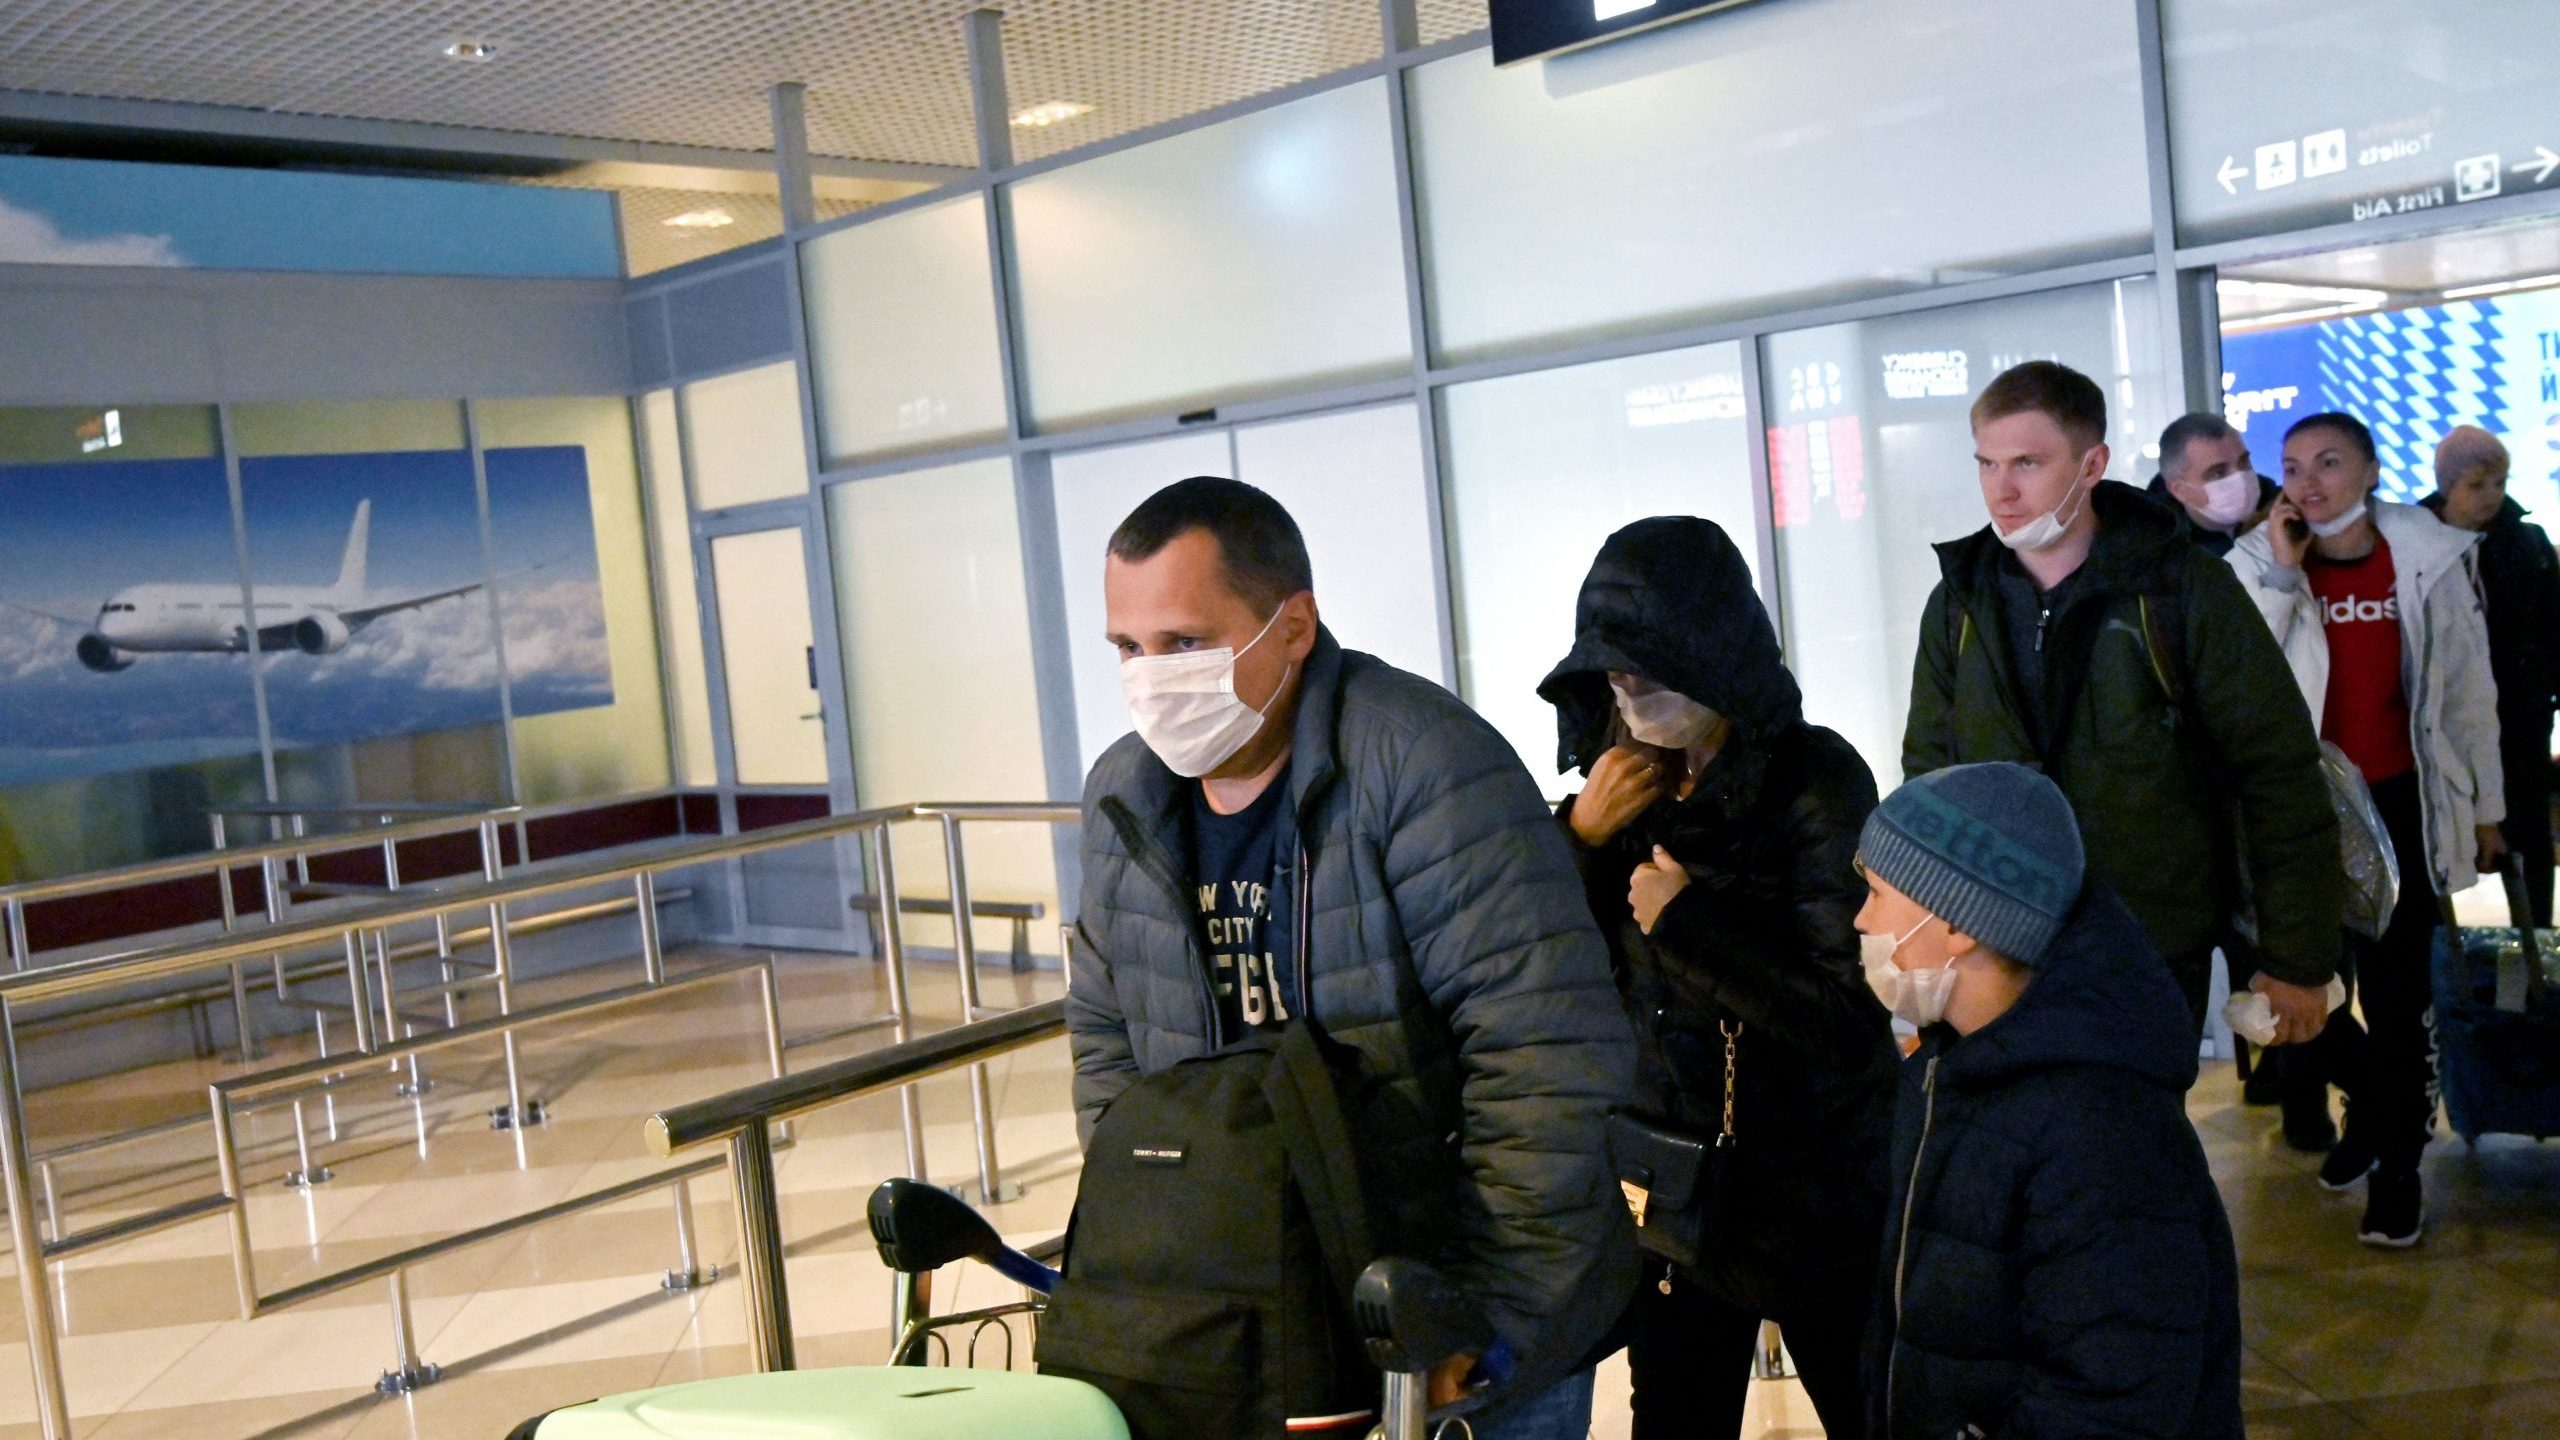 Ukrainian tourists walk in the arrival hall of the Internatioanal Boryspil airport outside Kiev after their plane landed from China on Jan. 30, 2020. The first out of four special flights will be held on Jan. 30, 2020, in order to evacuate hundreds of Ukrainian tourists from China as the deadly coronavirus outbreak grows. (Credit: SERGEI SUPINSKY/AFP via Getty Images)